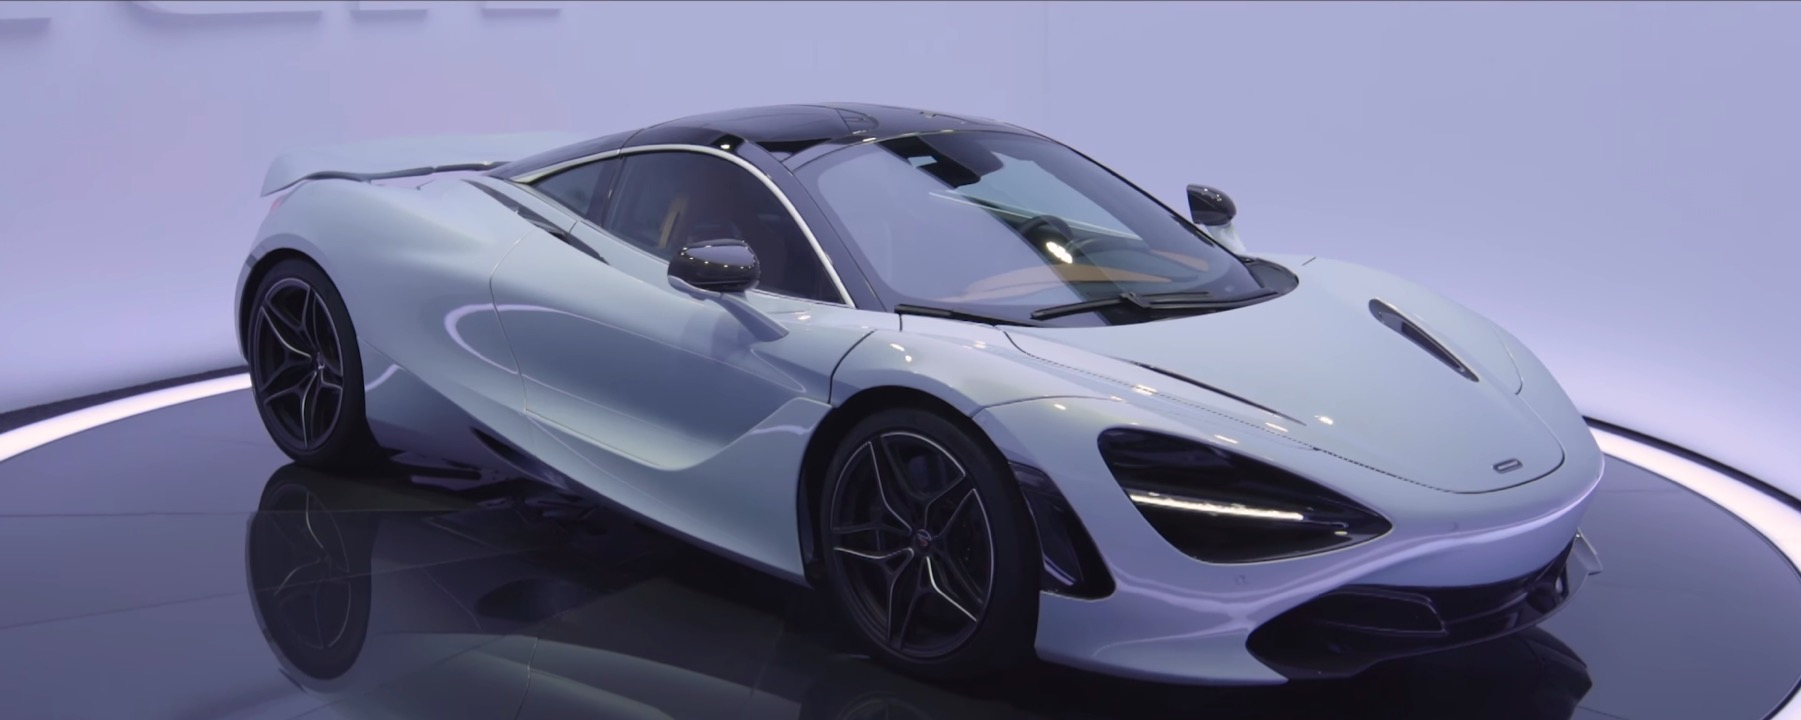 Bmw Palm Springs >> The McLaren 720S - indiGO Auto Group Blog